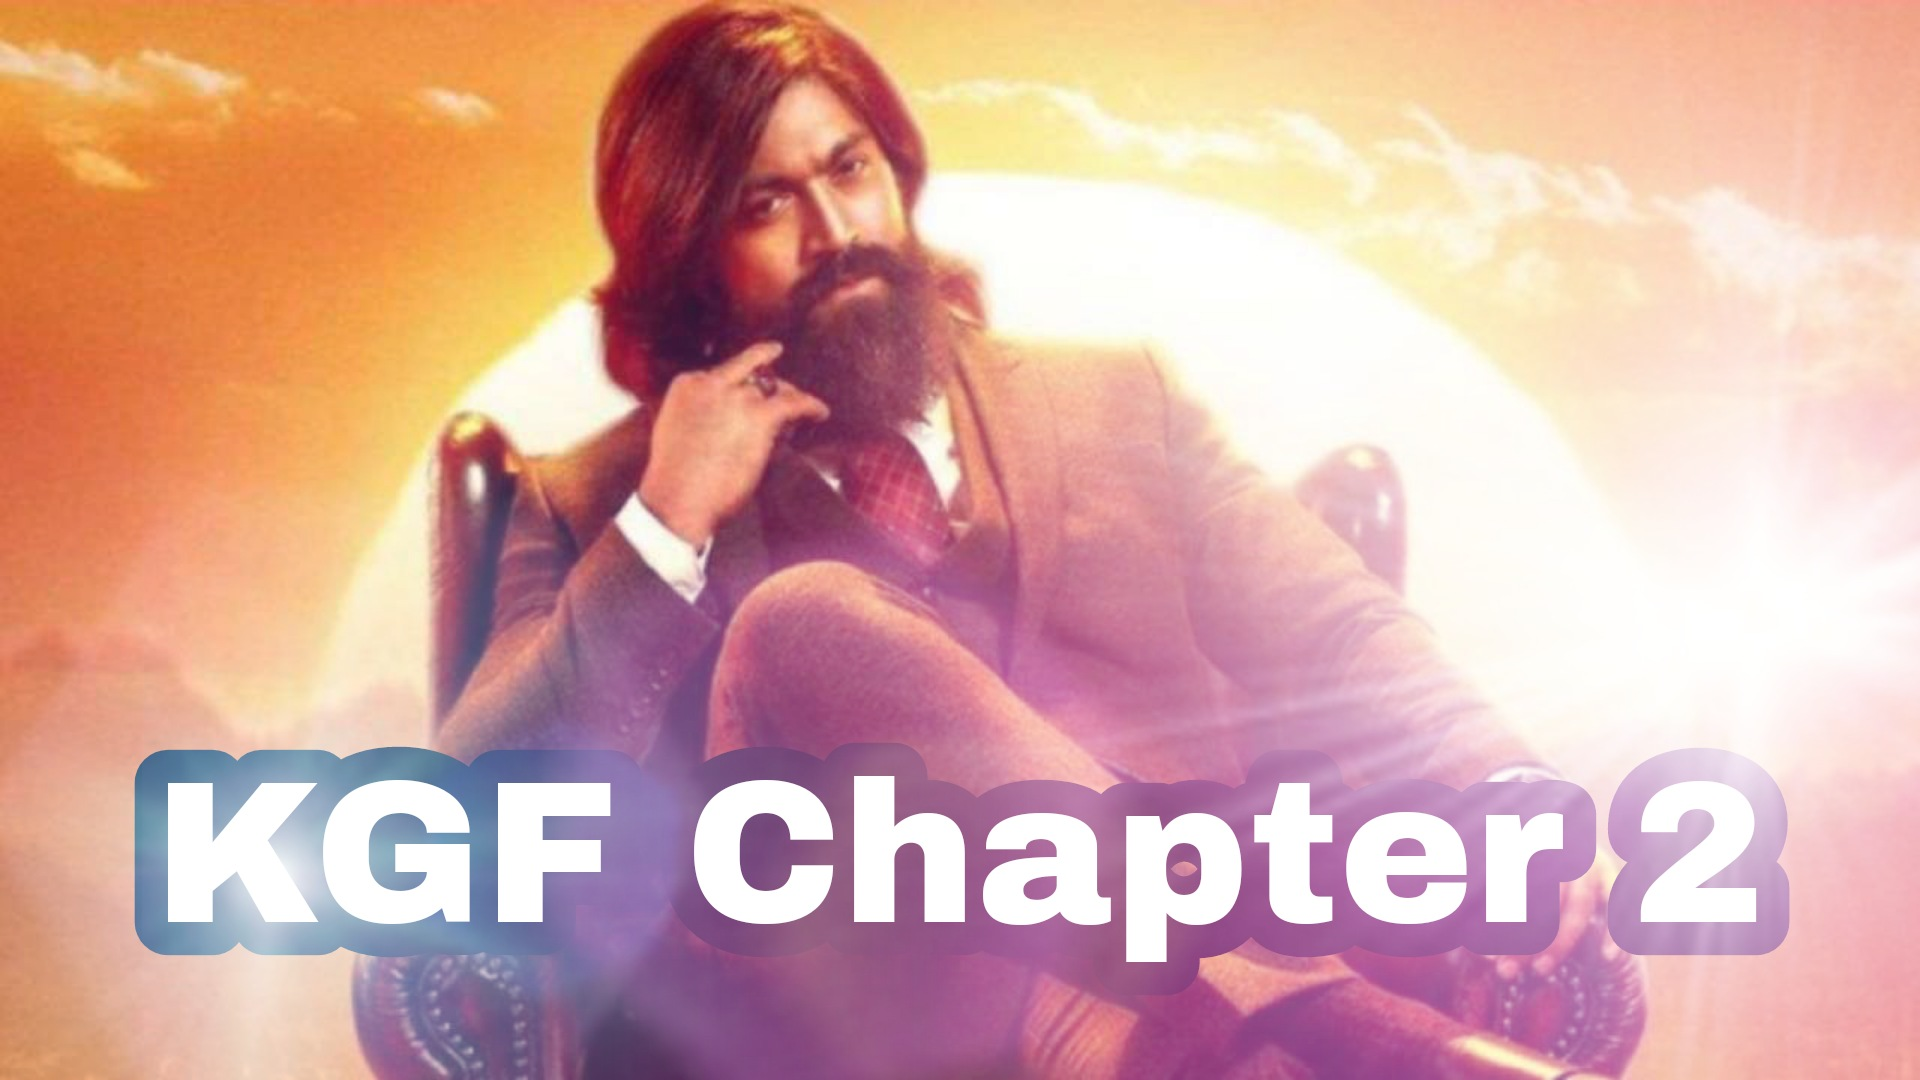 What is the budget of KGF chapter 2?